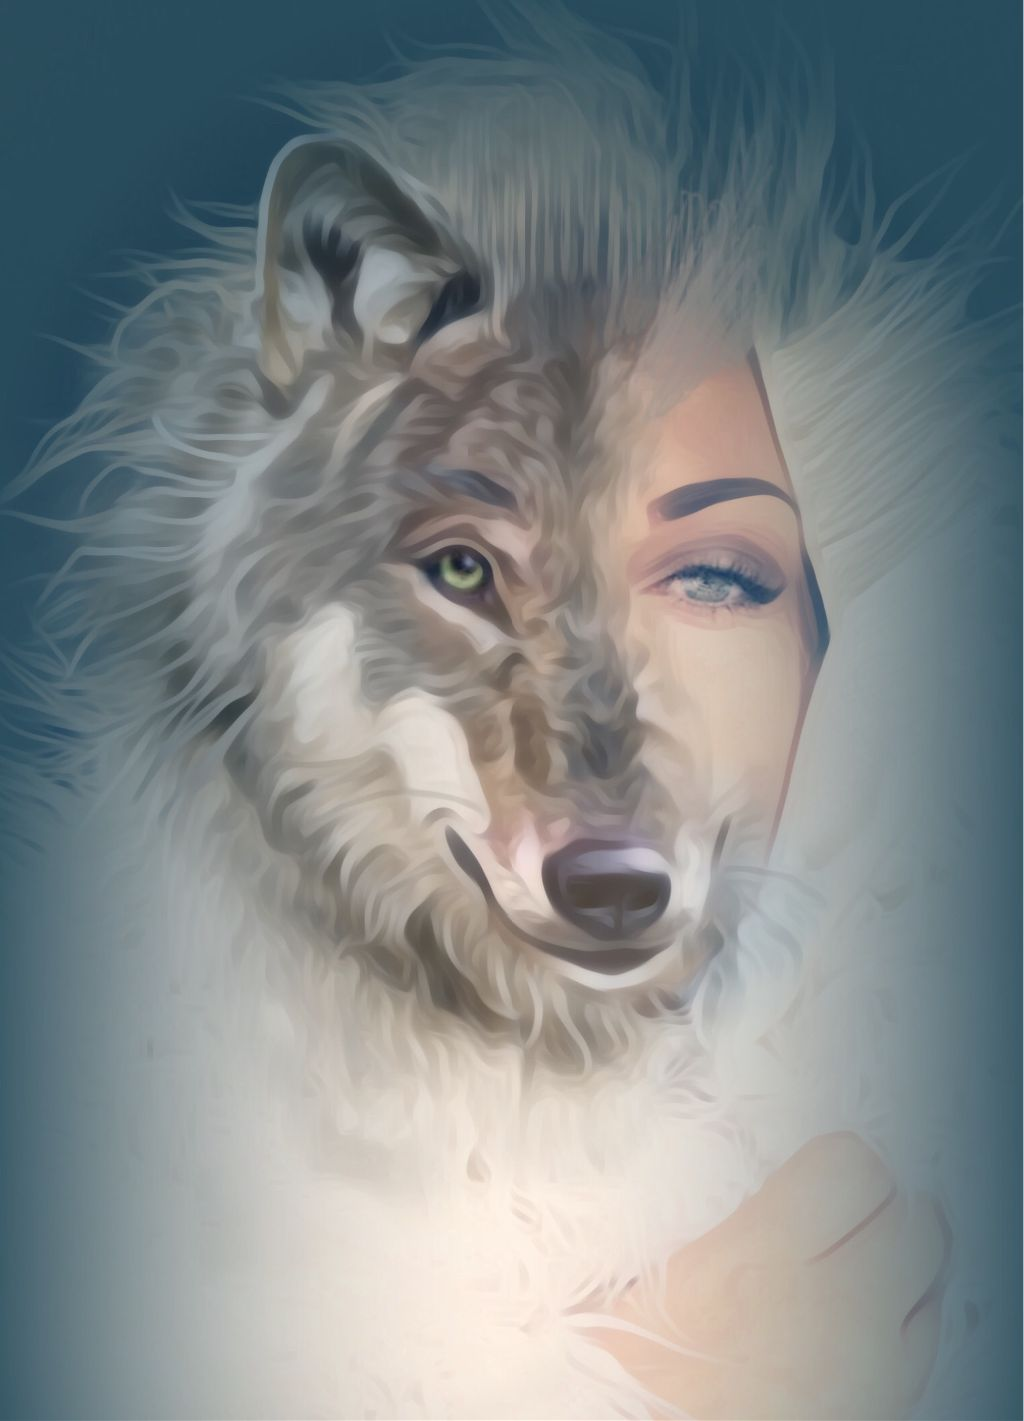 #vipshoutout #surreality  #doubleexposure #wolfqueen #parteditpartdraw #picsart #madewithpicsart @picsart  #freetoedit Congratulations to VIPShoutout Artist Of The Week: @aleda_bandita Please visit her wonderful gallery and share some love. She has many #freetoedit photos that will inspire your imagination👏🌟♥️😊